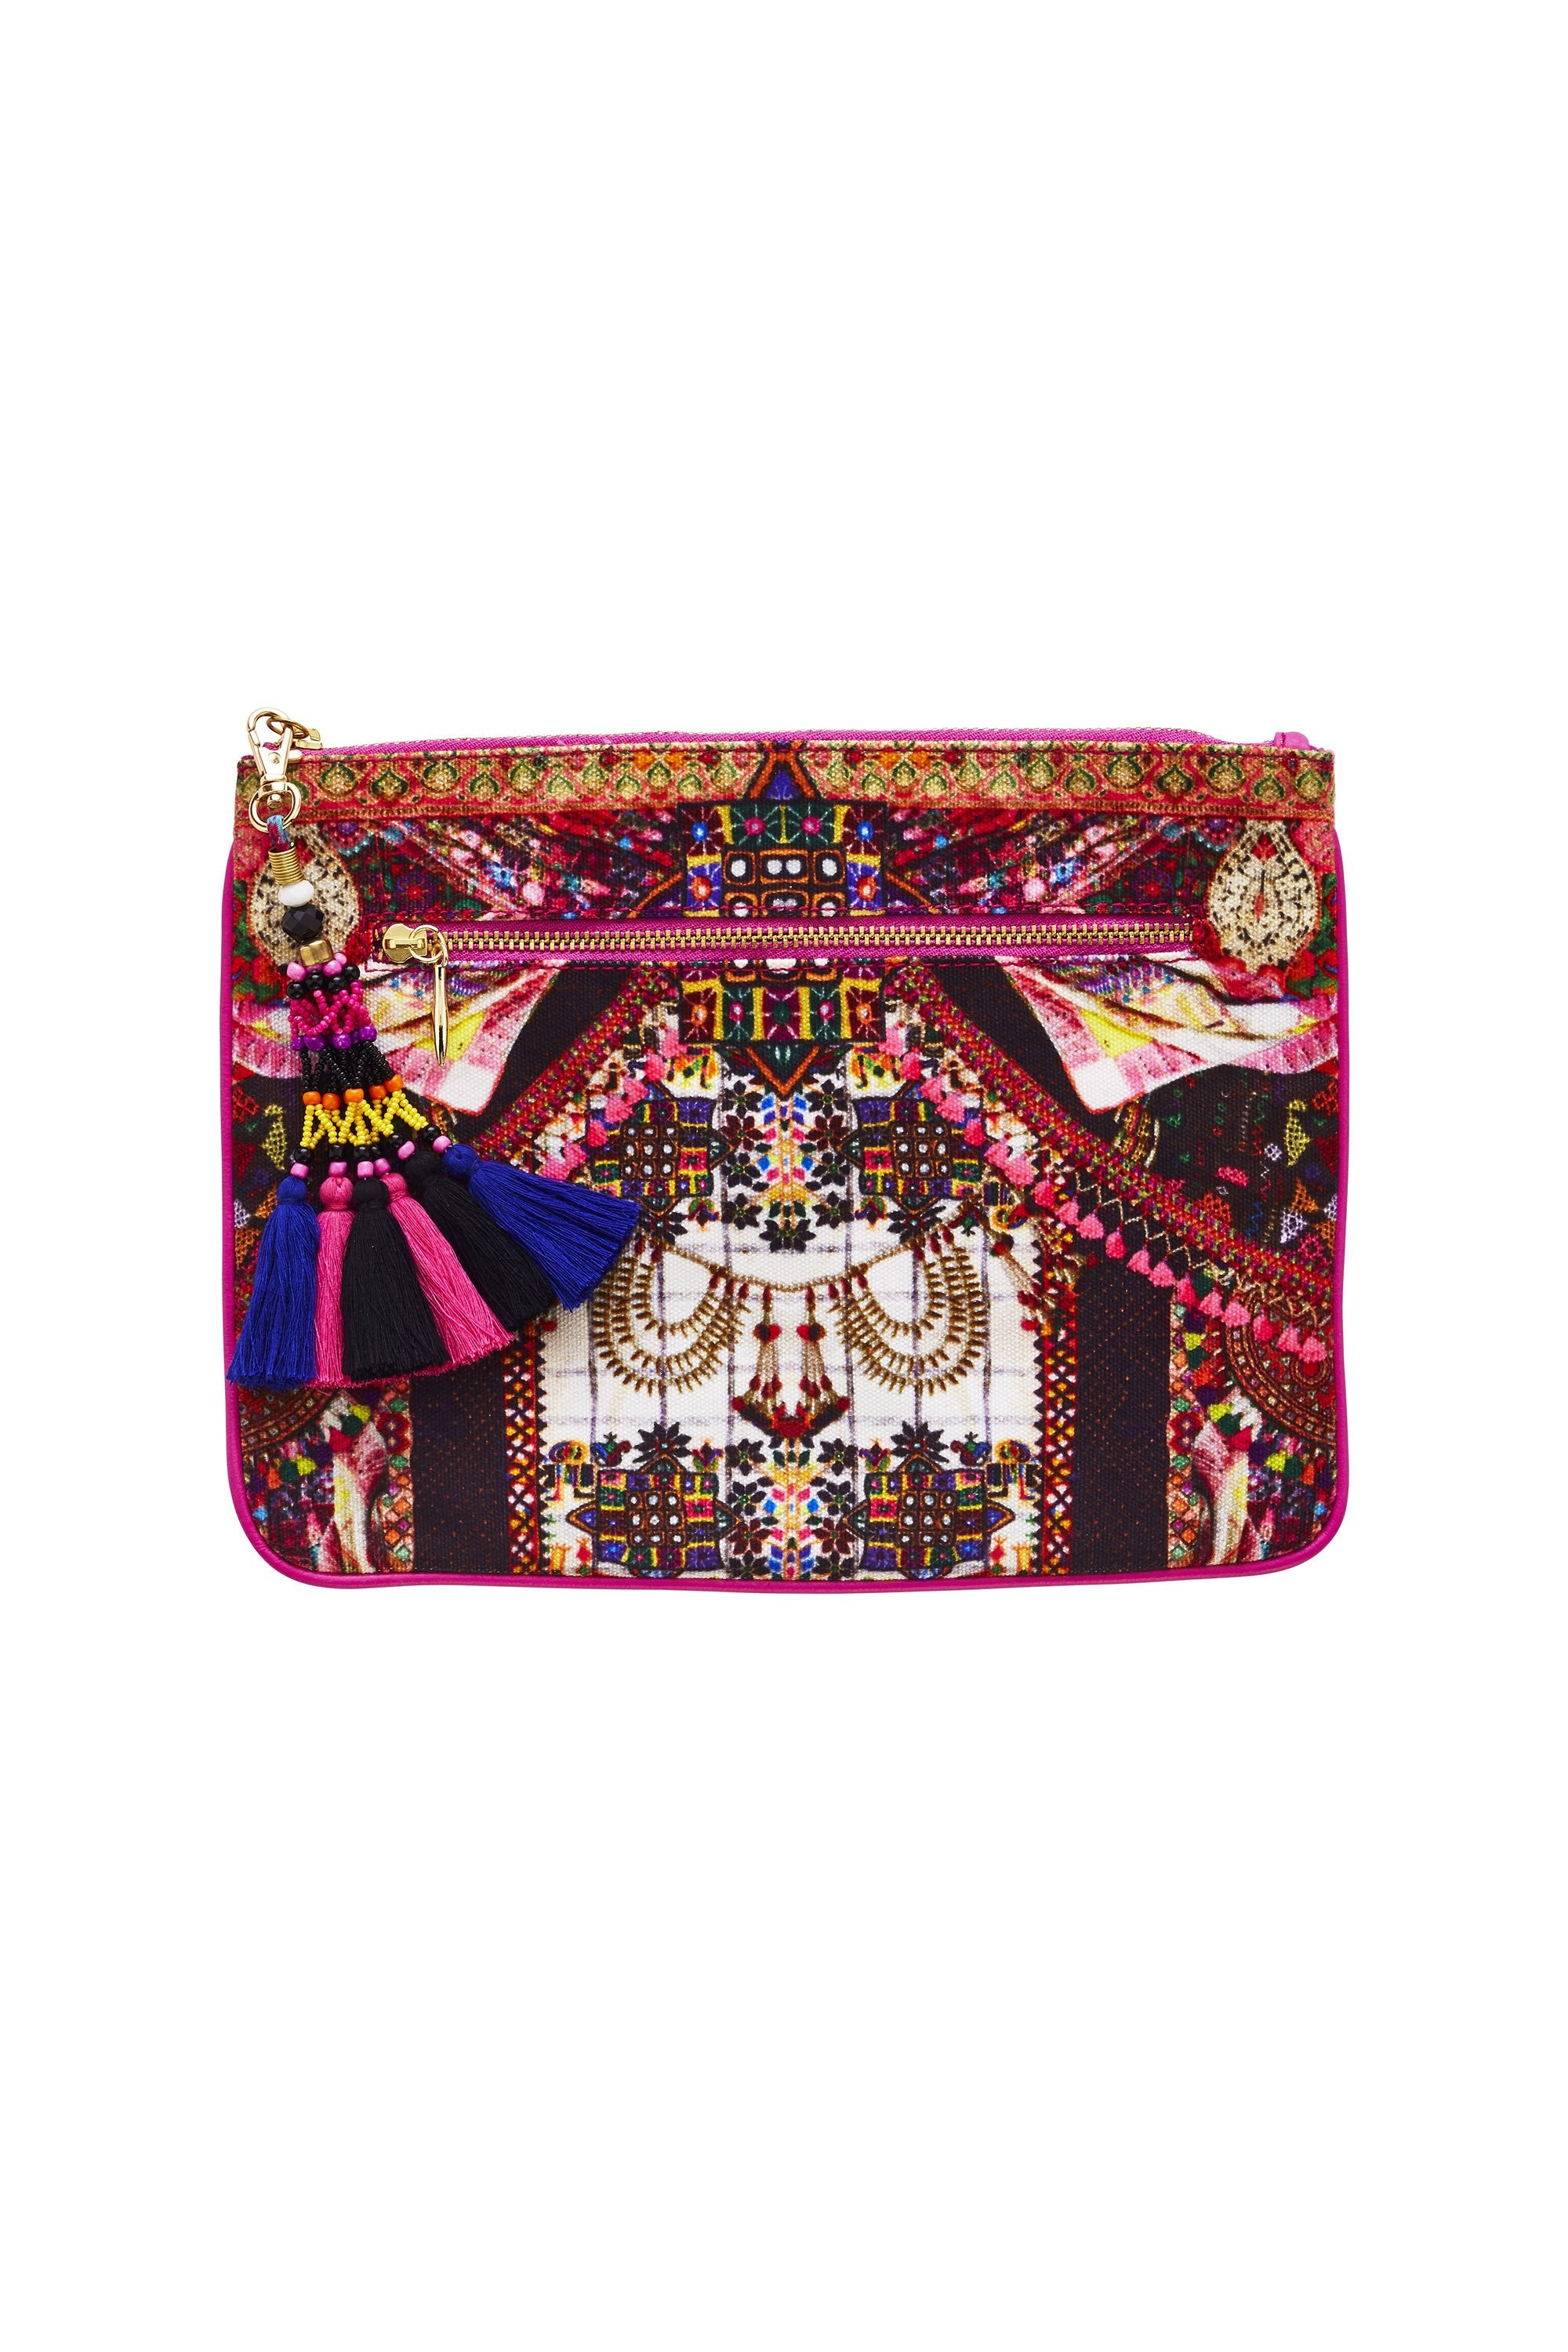 TINY DANCER SMALL CANVAS CLUTCH